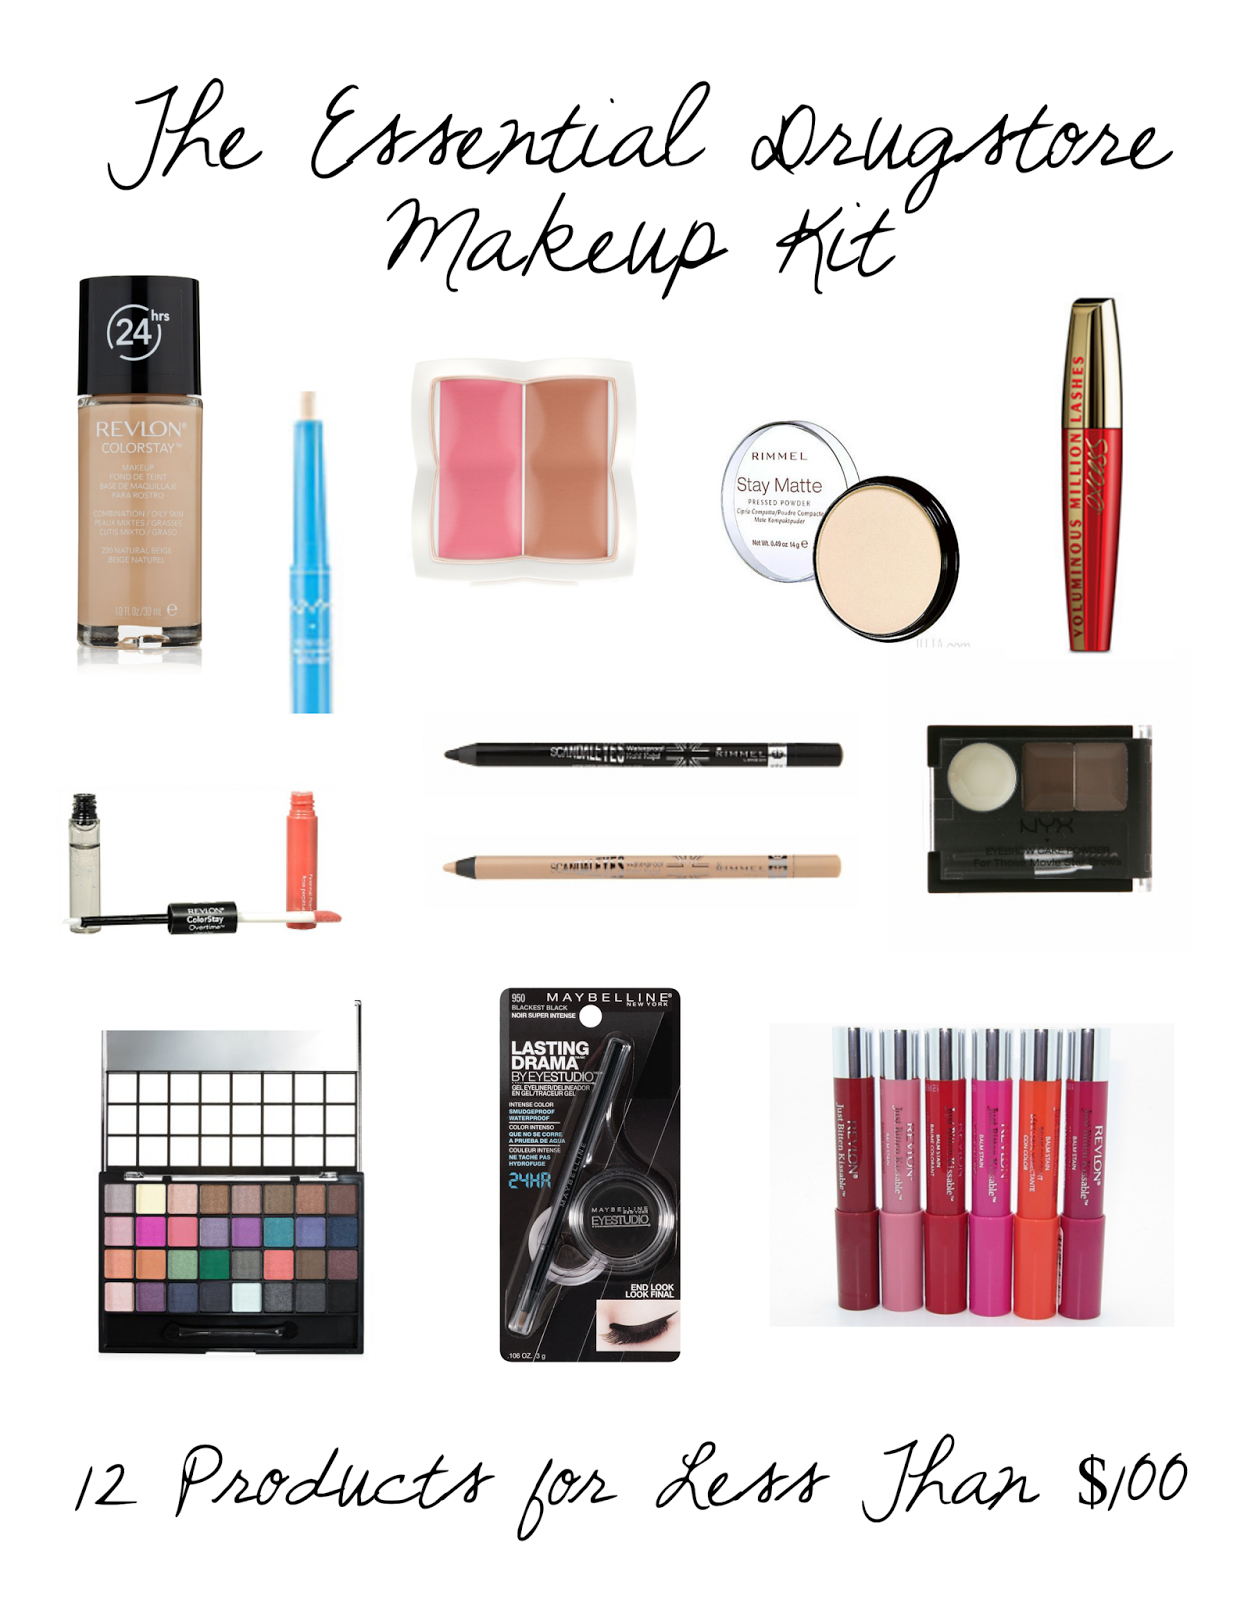 The Essential Drugstore Makeup Kit